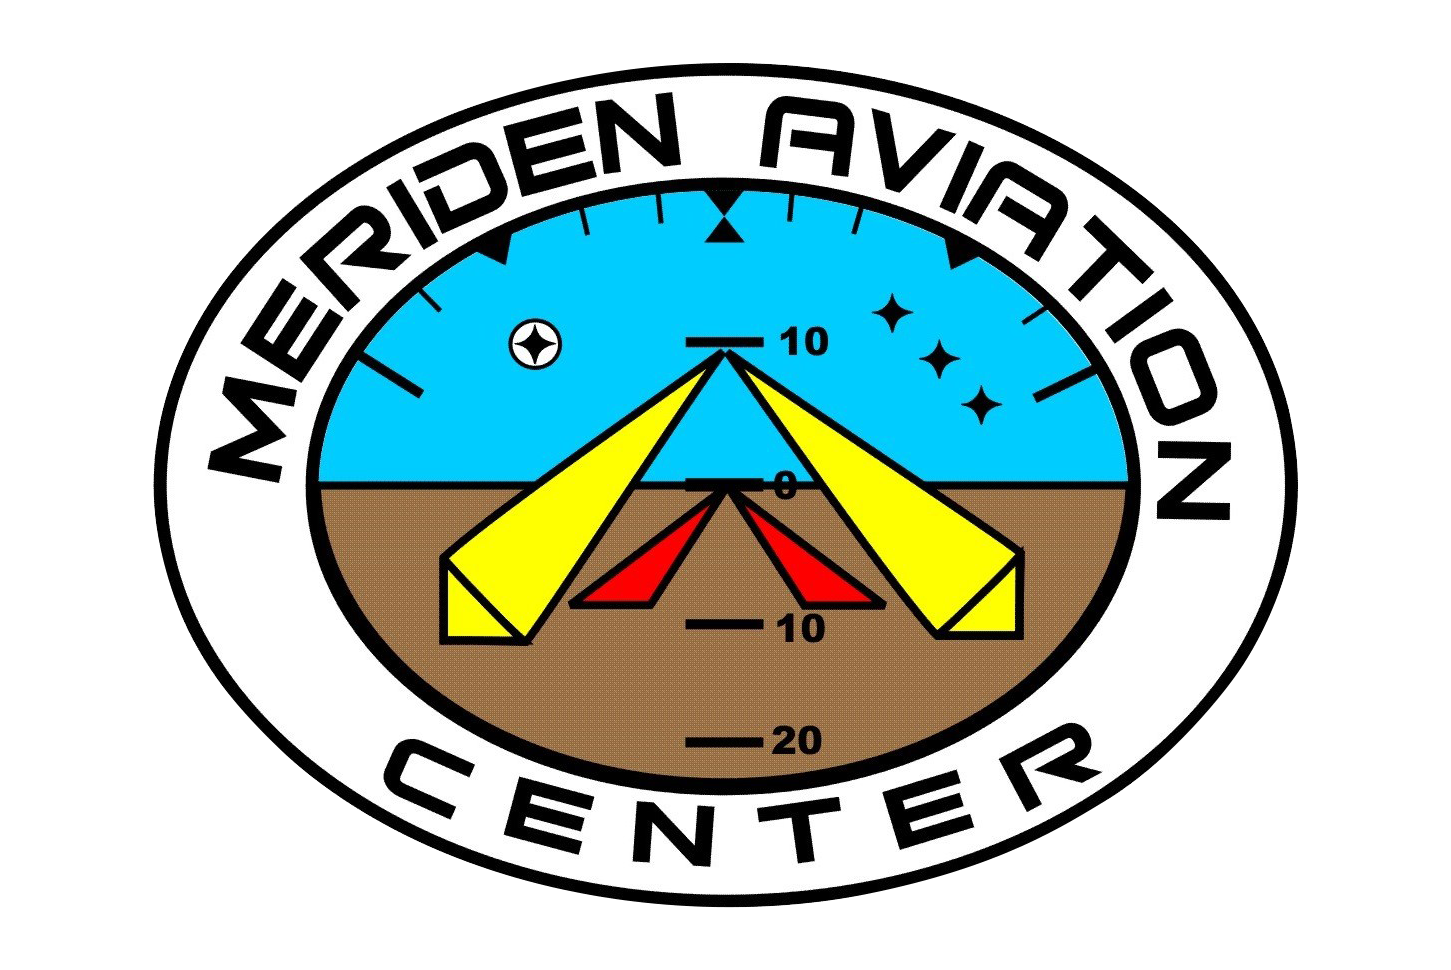 Lessons + Rentals from Meriden Aviation Center